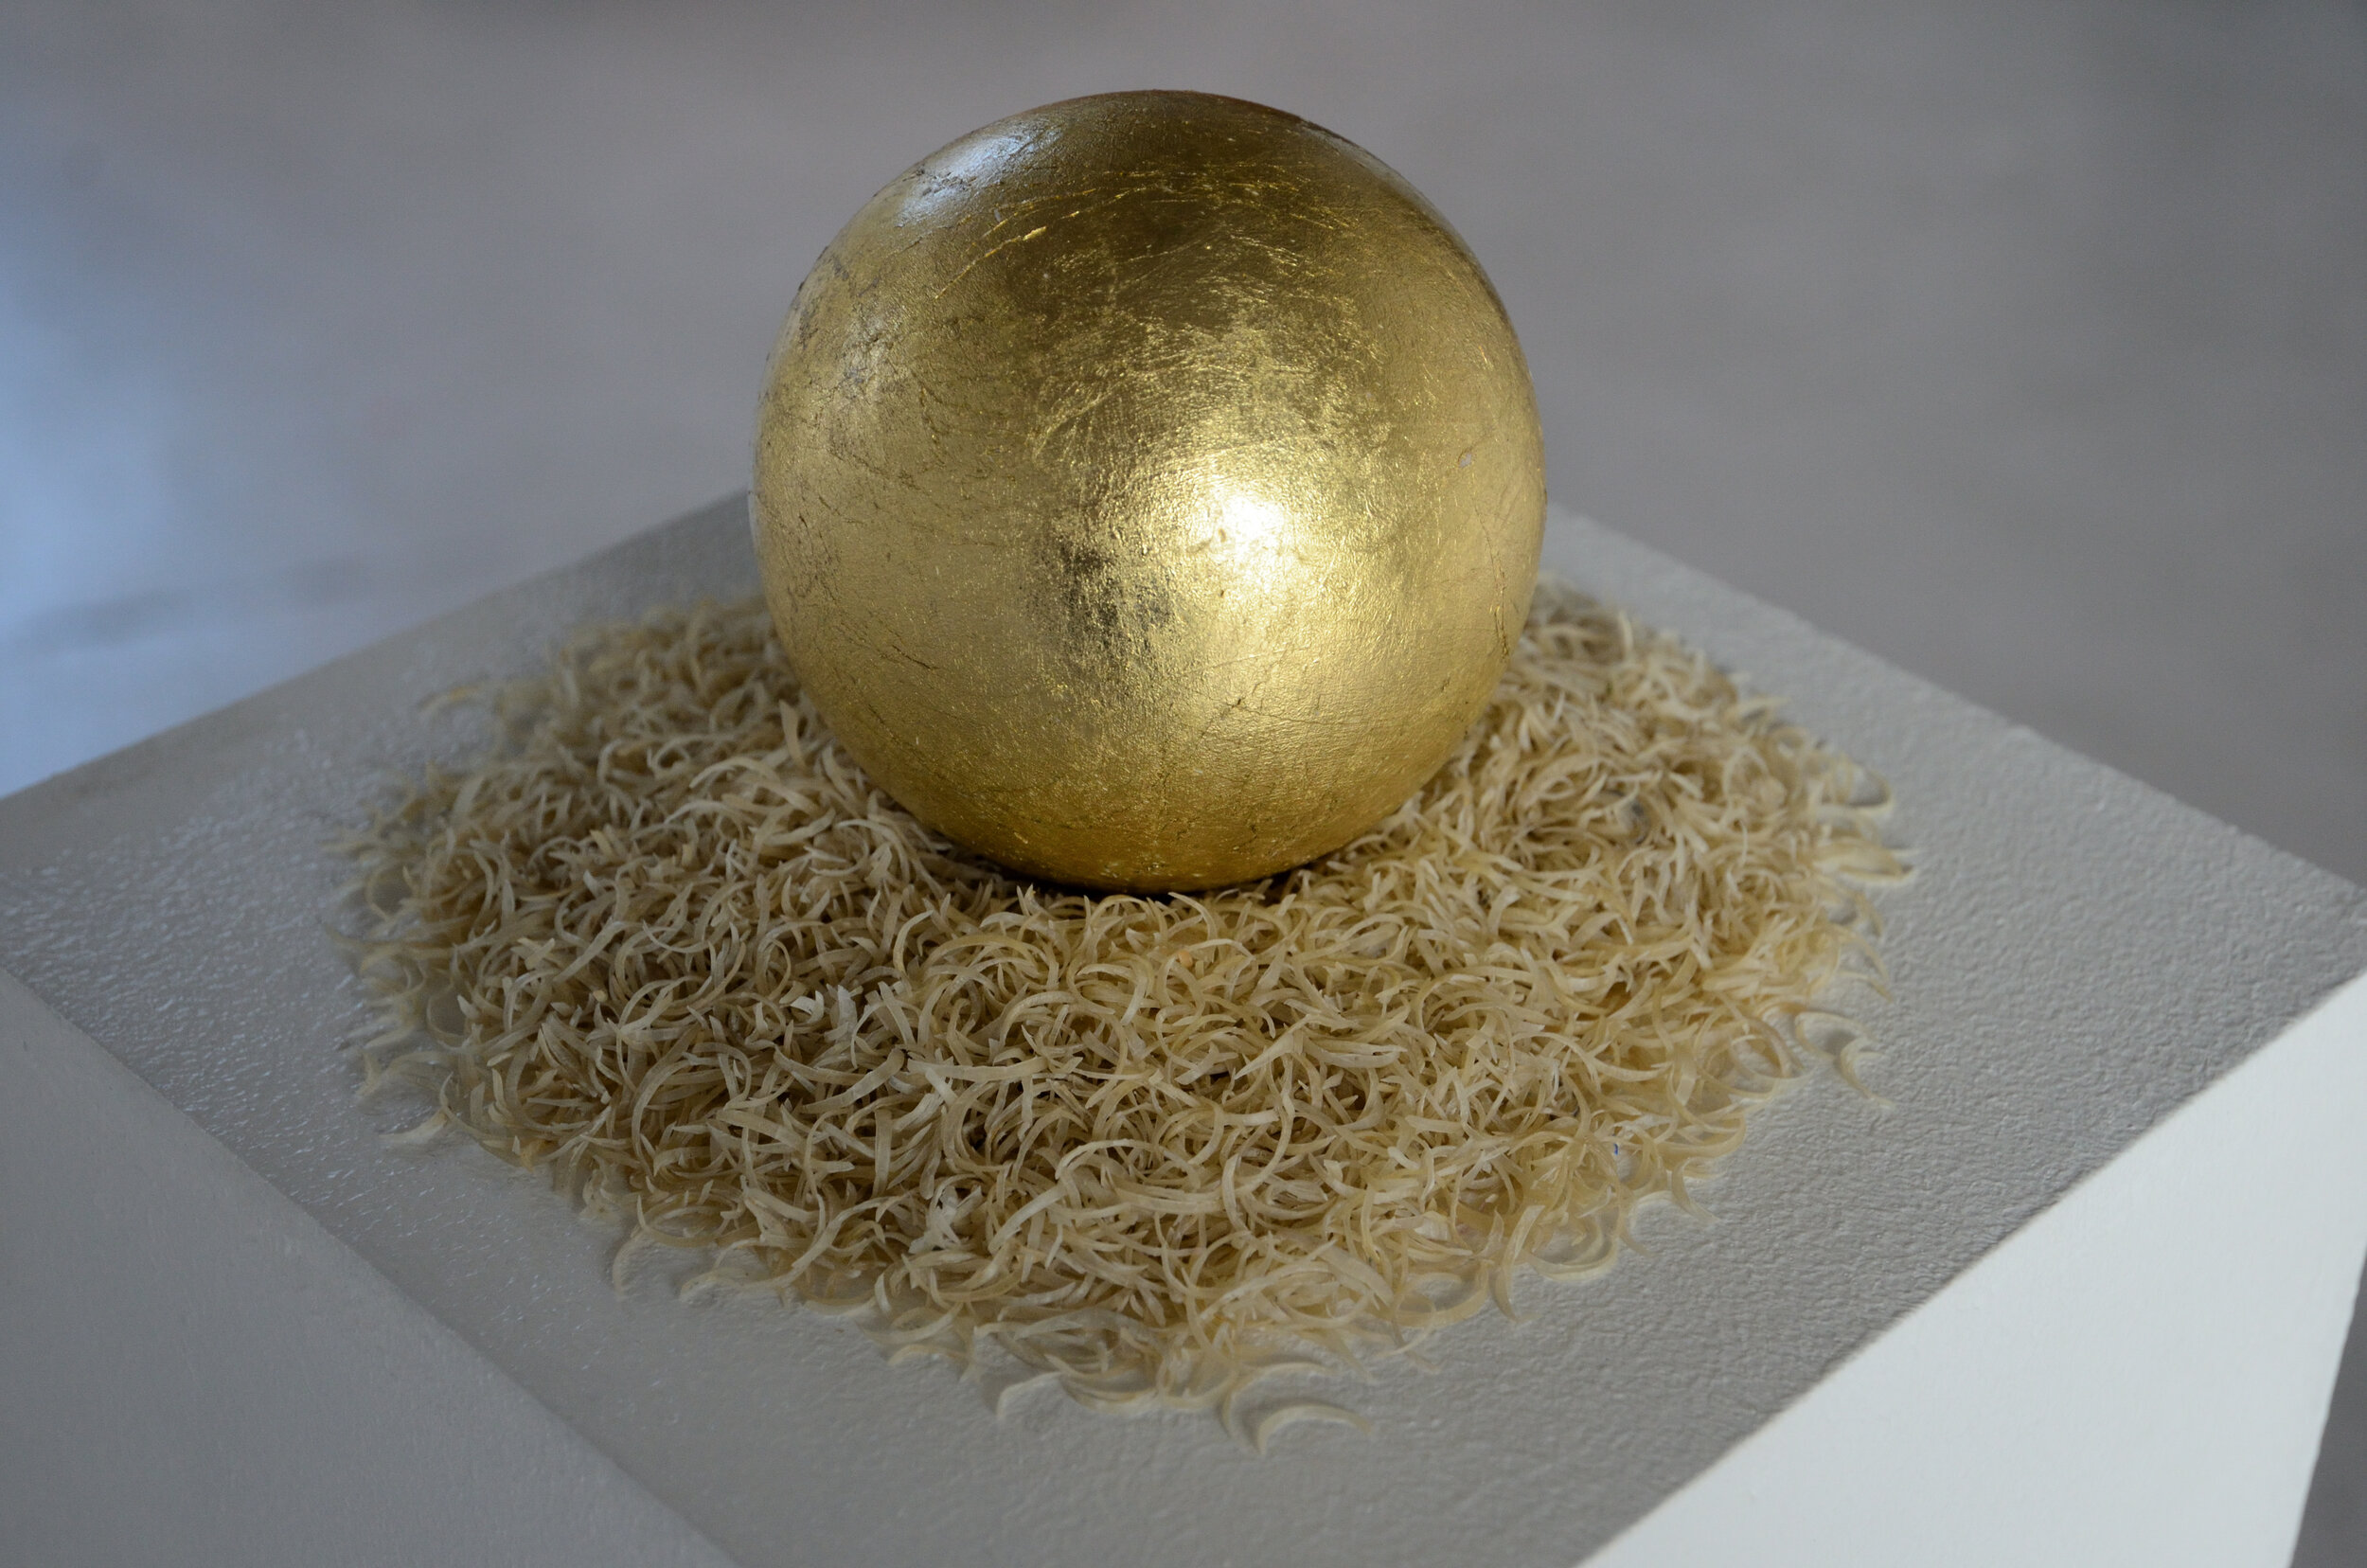 08. A Symbol for the Mind (close up), a gilded sphere on a bed of clipped fingernails, ca.25x25cm, 2019.JPG